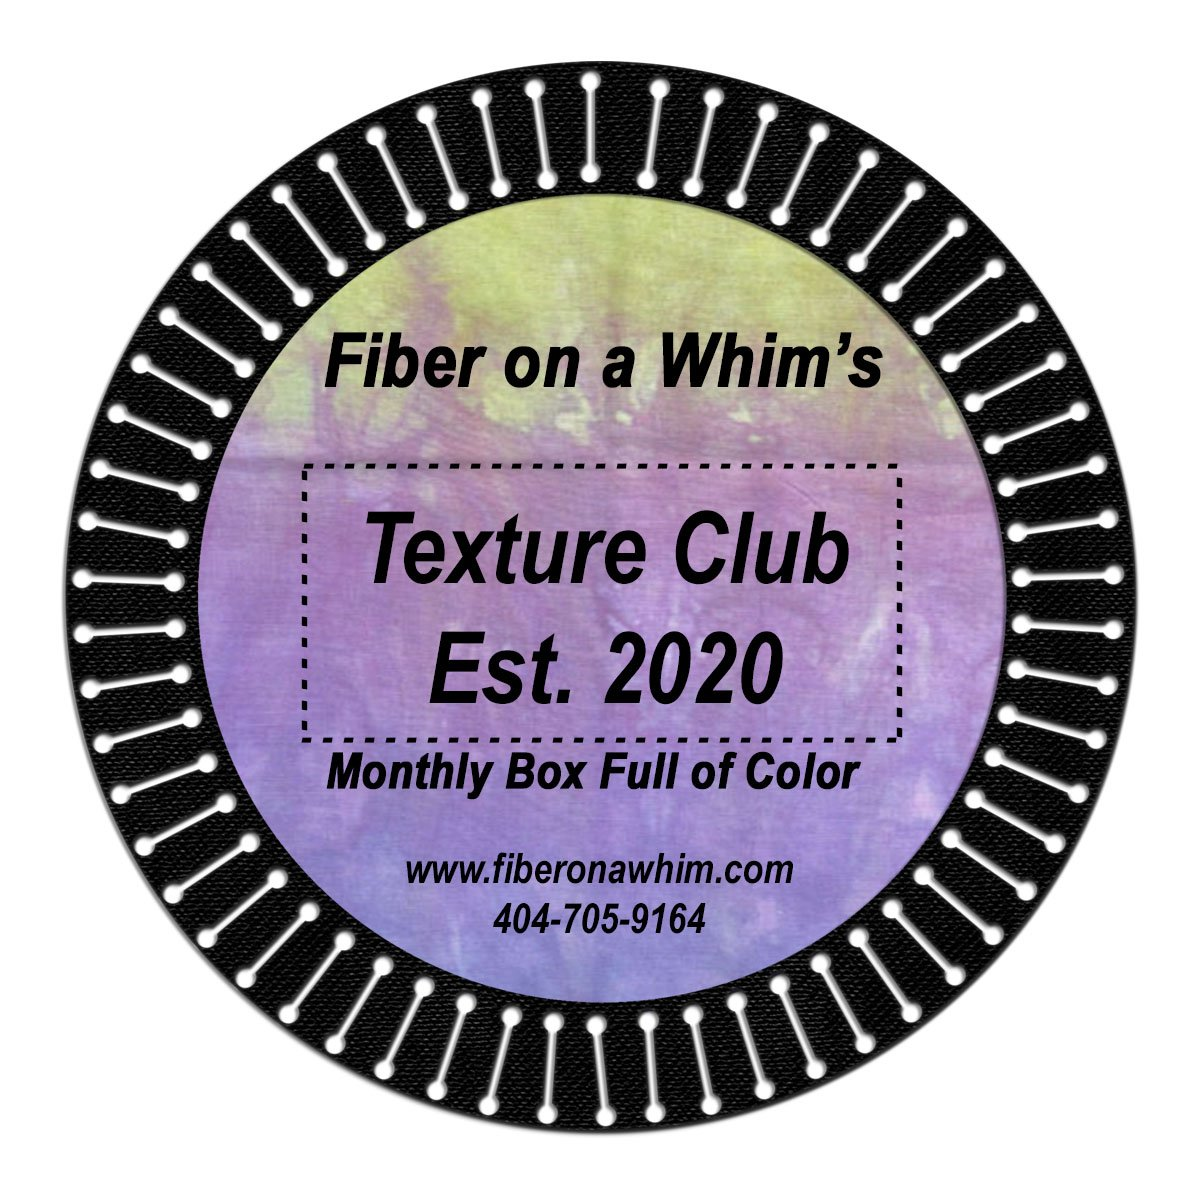 Fiber on a Whim Texture Club - Monthly Subscription